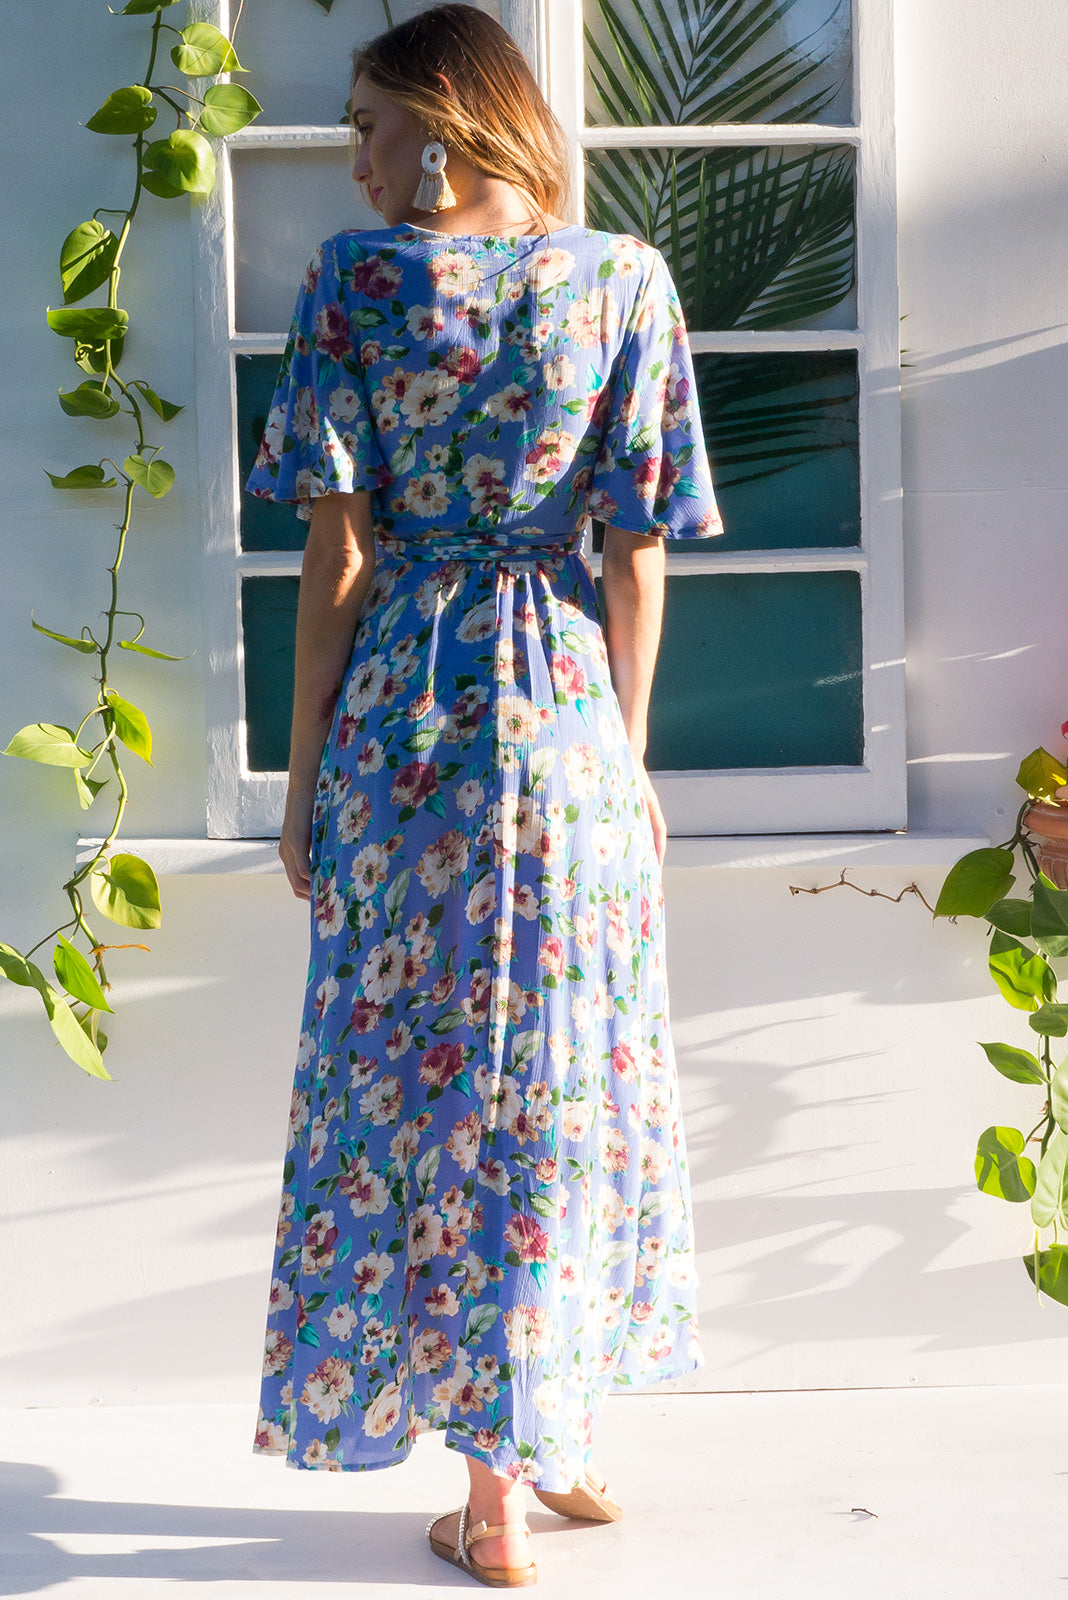 Cinnamon Ballyclare Blue Maxi Dress cornflower blue floral print on crinkle rayon and with a flutter sleeve